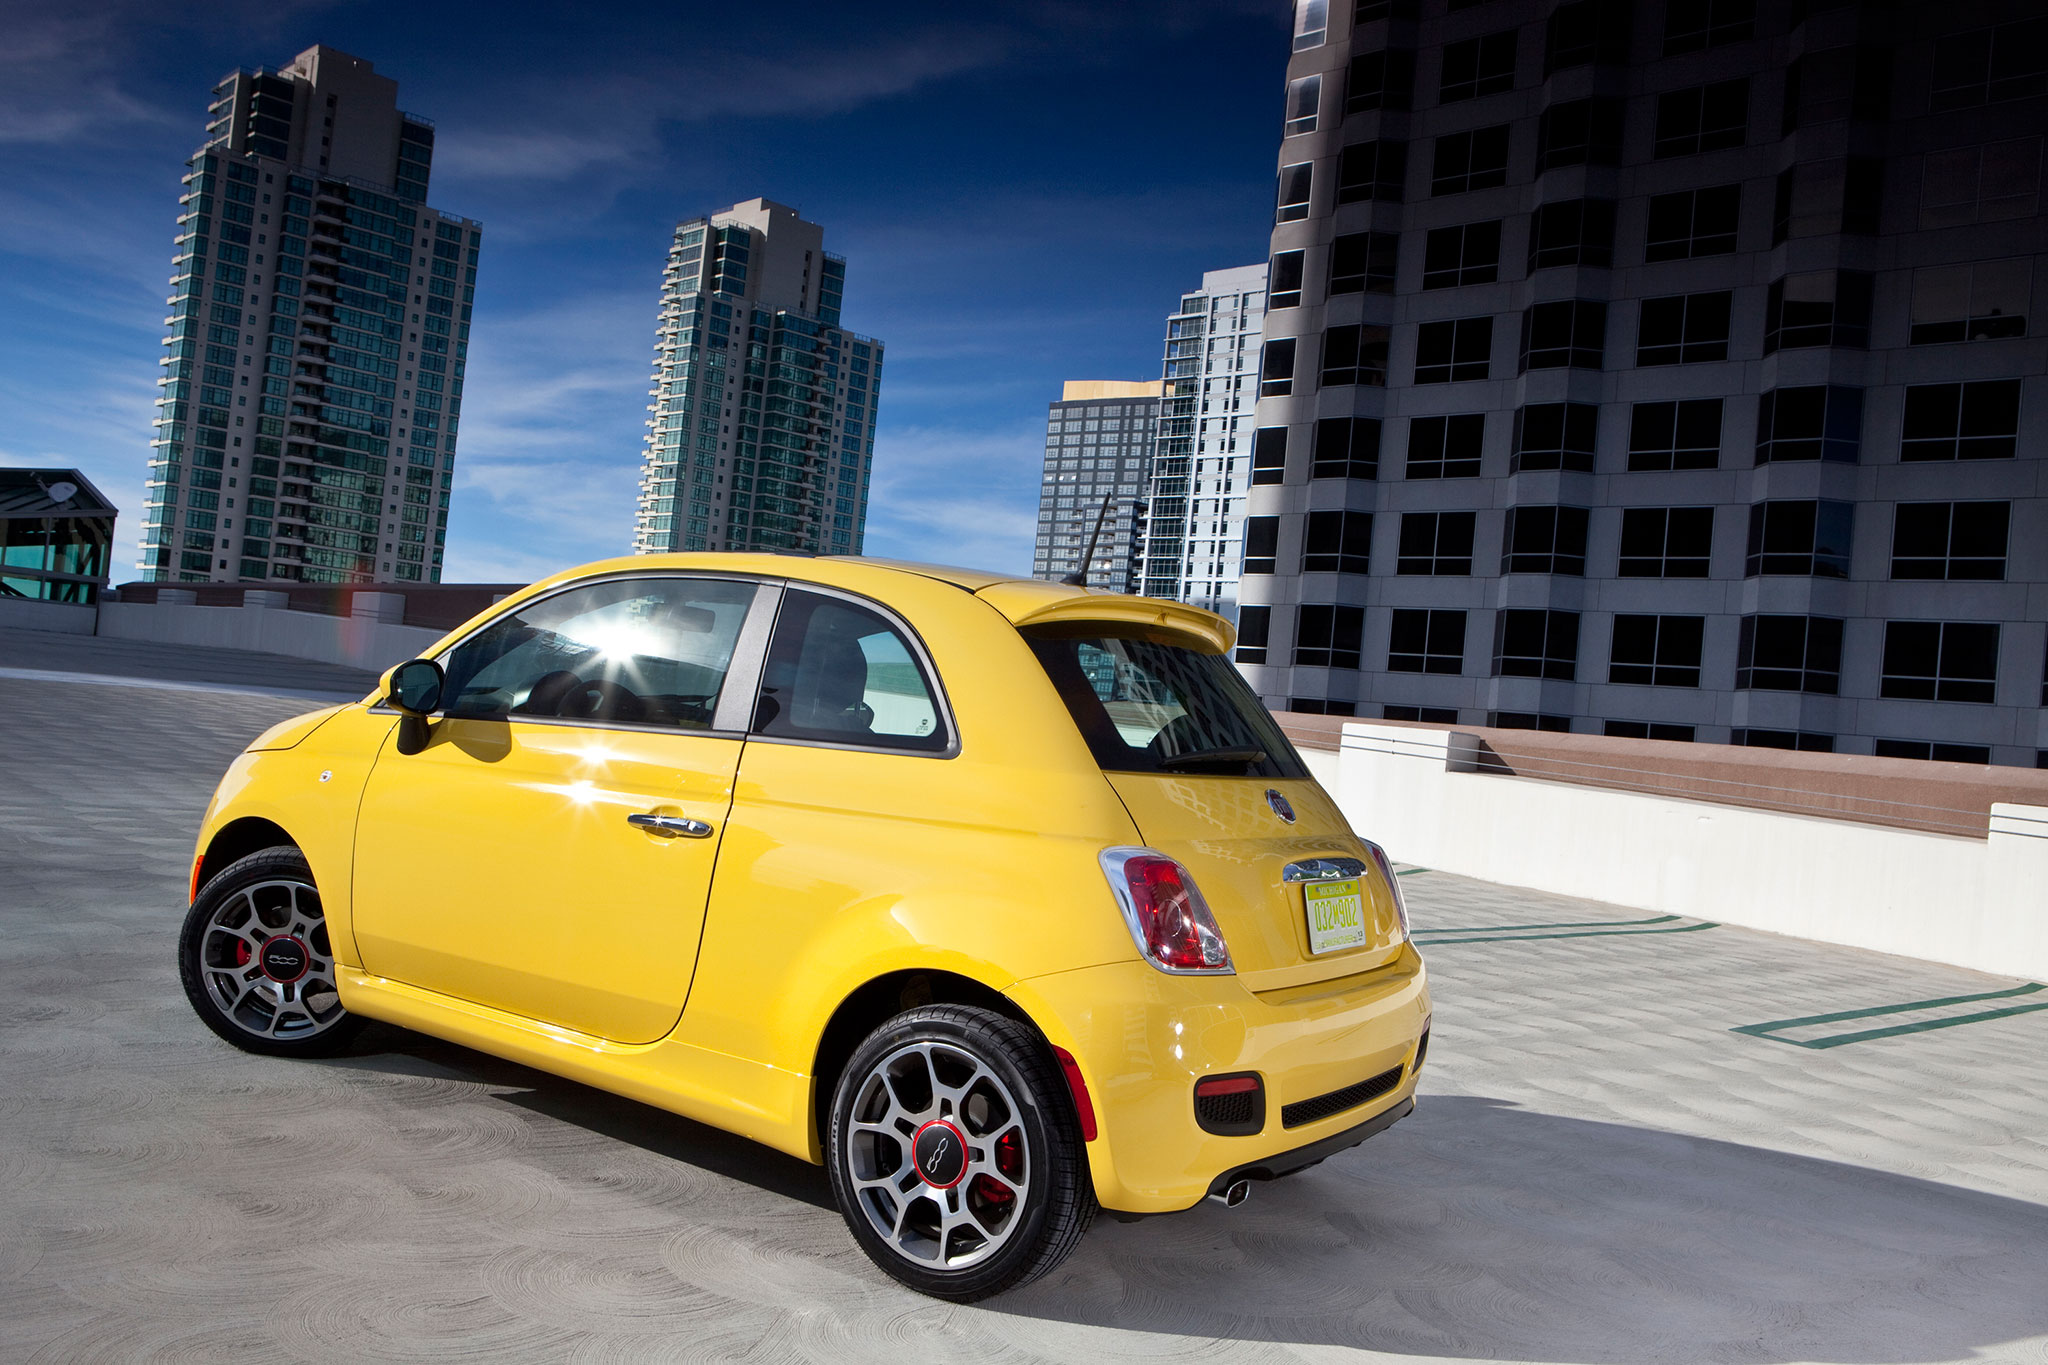 fiat price mini versus which autoevolution small car video cooper one pick news photos to